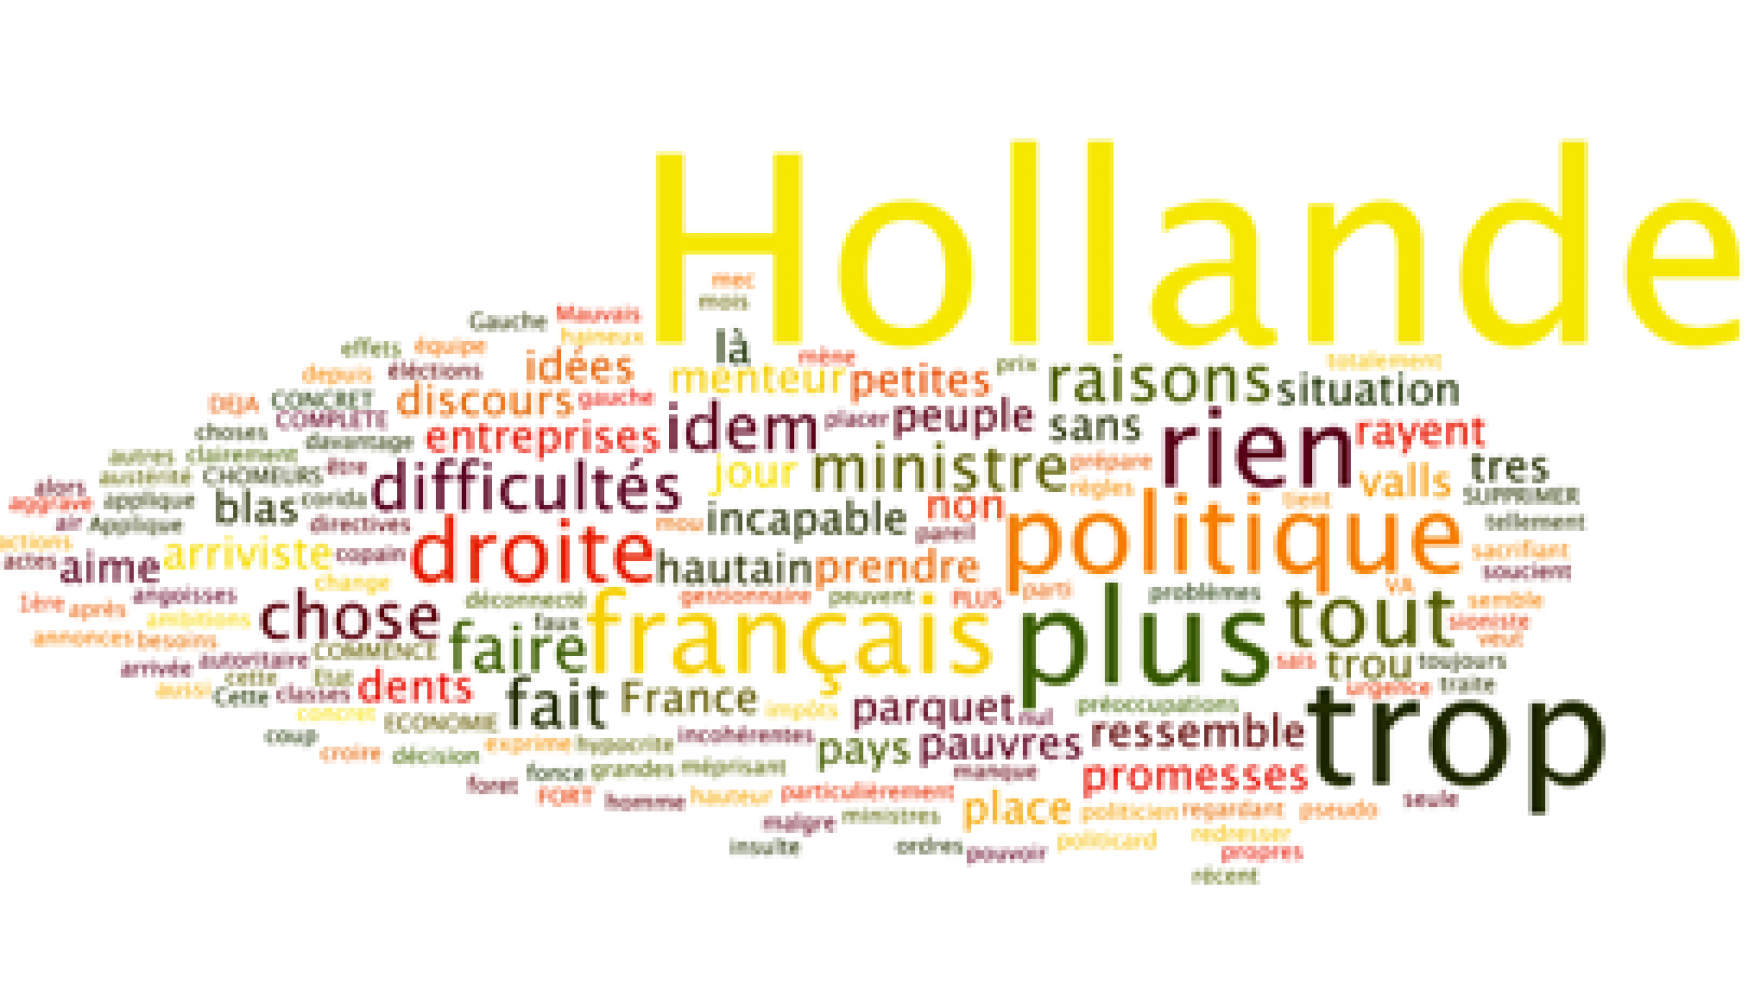 Baromètre Harris Interactive/Délits d'Opinion : Valls paye pour Hollande ?